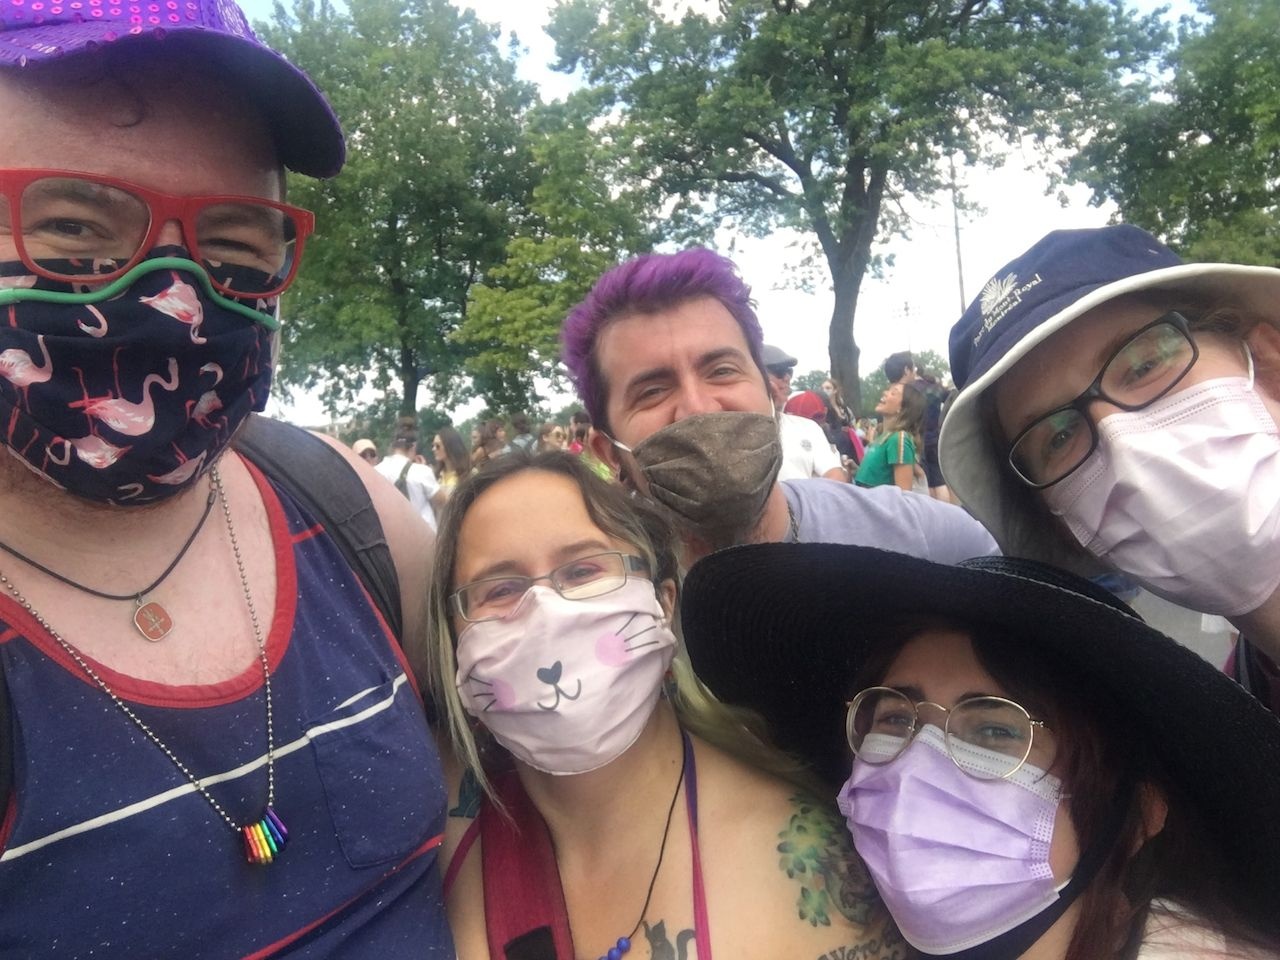 A photo of me and four friends, all masked, waiting for the Pride march to start on Avenue Parc.